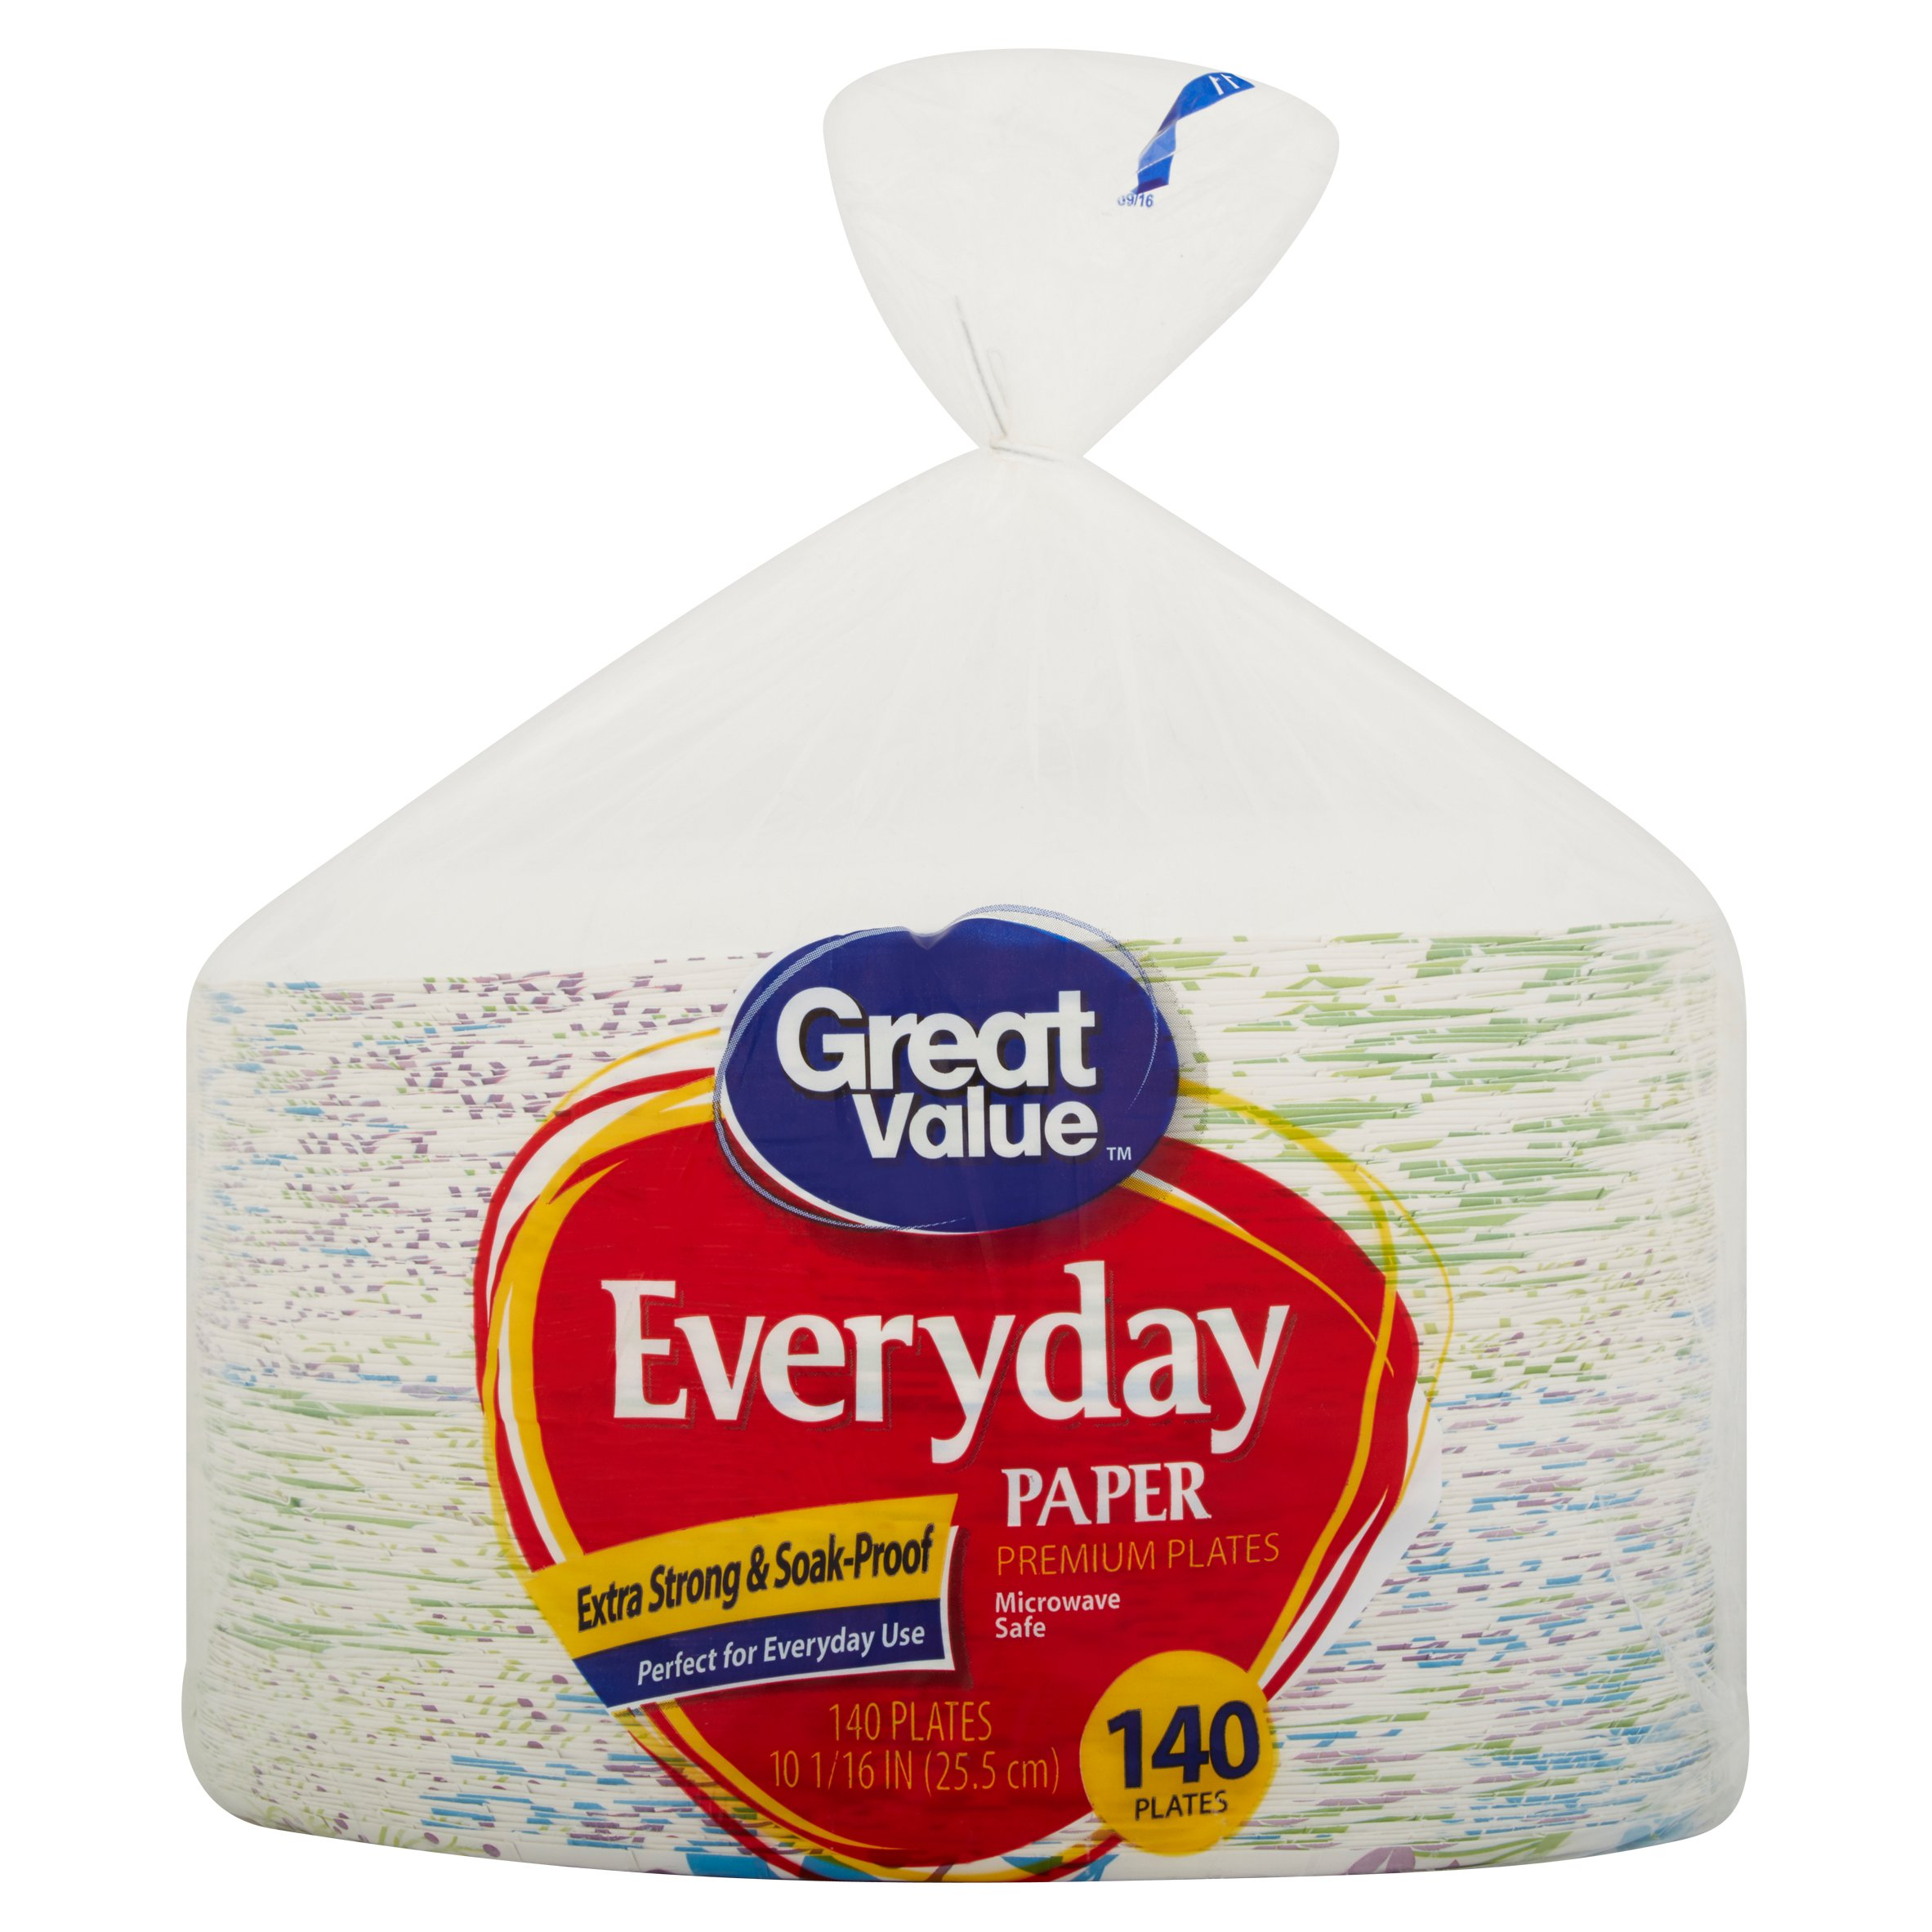 "Great Value Everyday Paper Premium Plates, 10 1/16"", 140 Count"